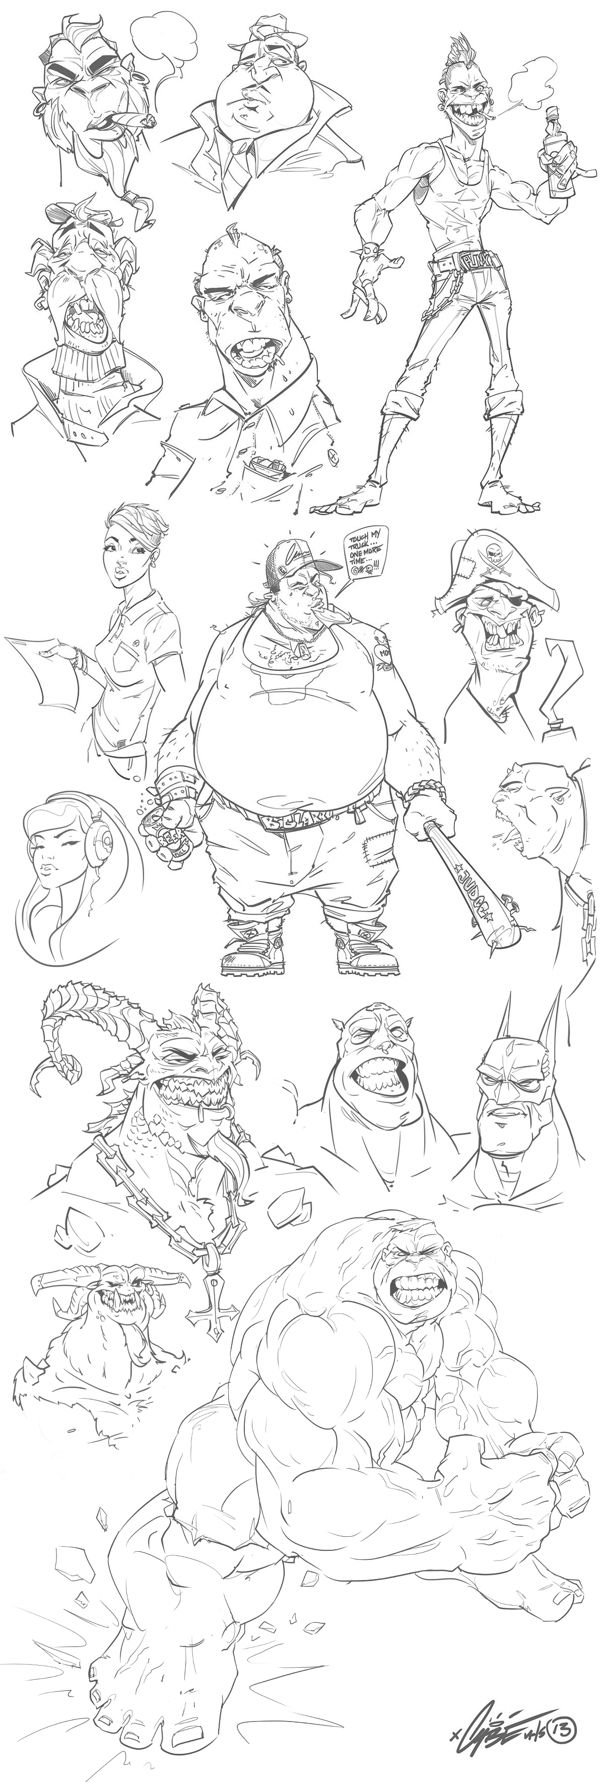 ✤ || CHARACTER DESIGN REFERENCES | キャラクターデザイン • Find more at https://www.facebook.com/CharacterDesignReferences if you're looking for: #lineart #art #character #design #illustration #expressions #best #animation #drawing #archive #library #reference #anatomy #traditional #sketch #development #artist #pose #settei #gestures #how #to #tutorial #comics #conceptart #modelsheet #cartoon || ✤